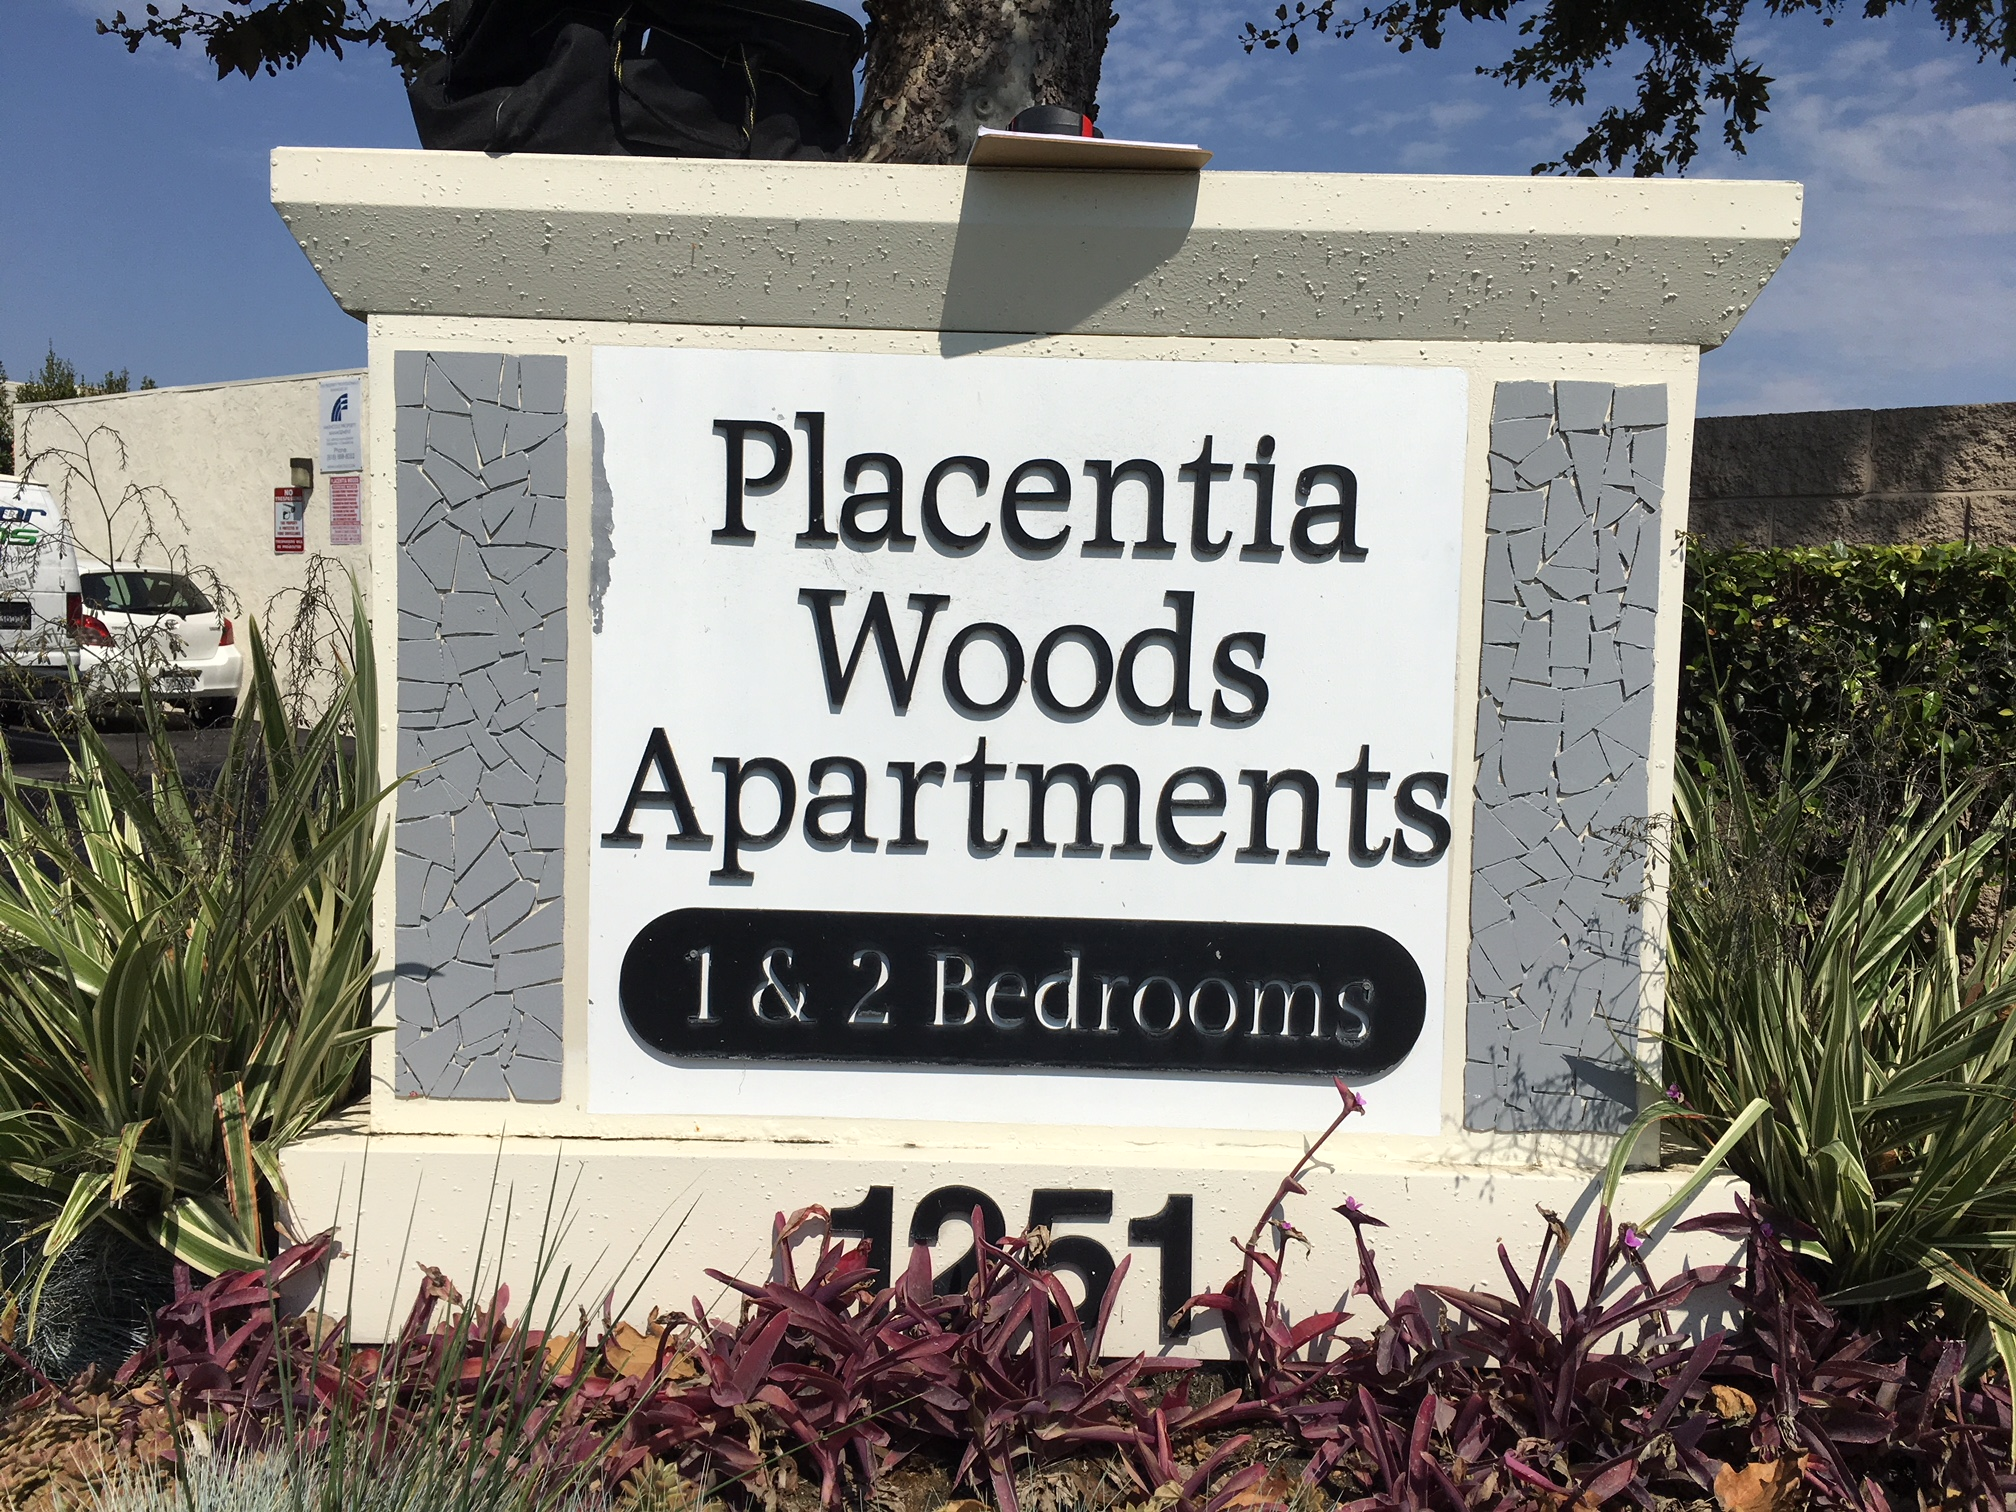 Apartment Complex Name Change Leads to a Monument Sign ...